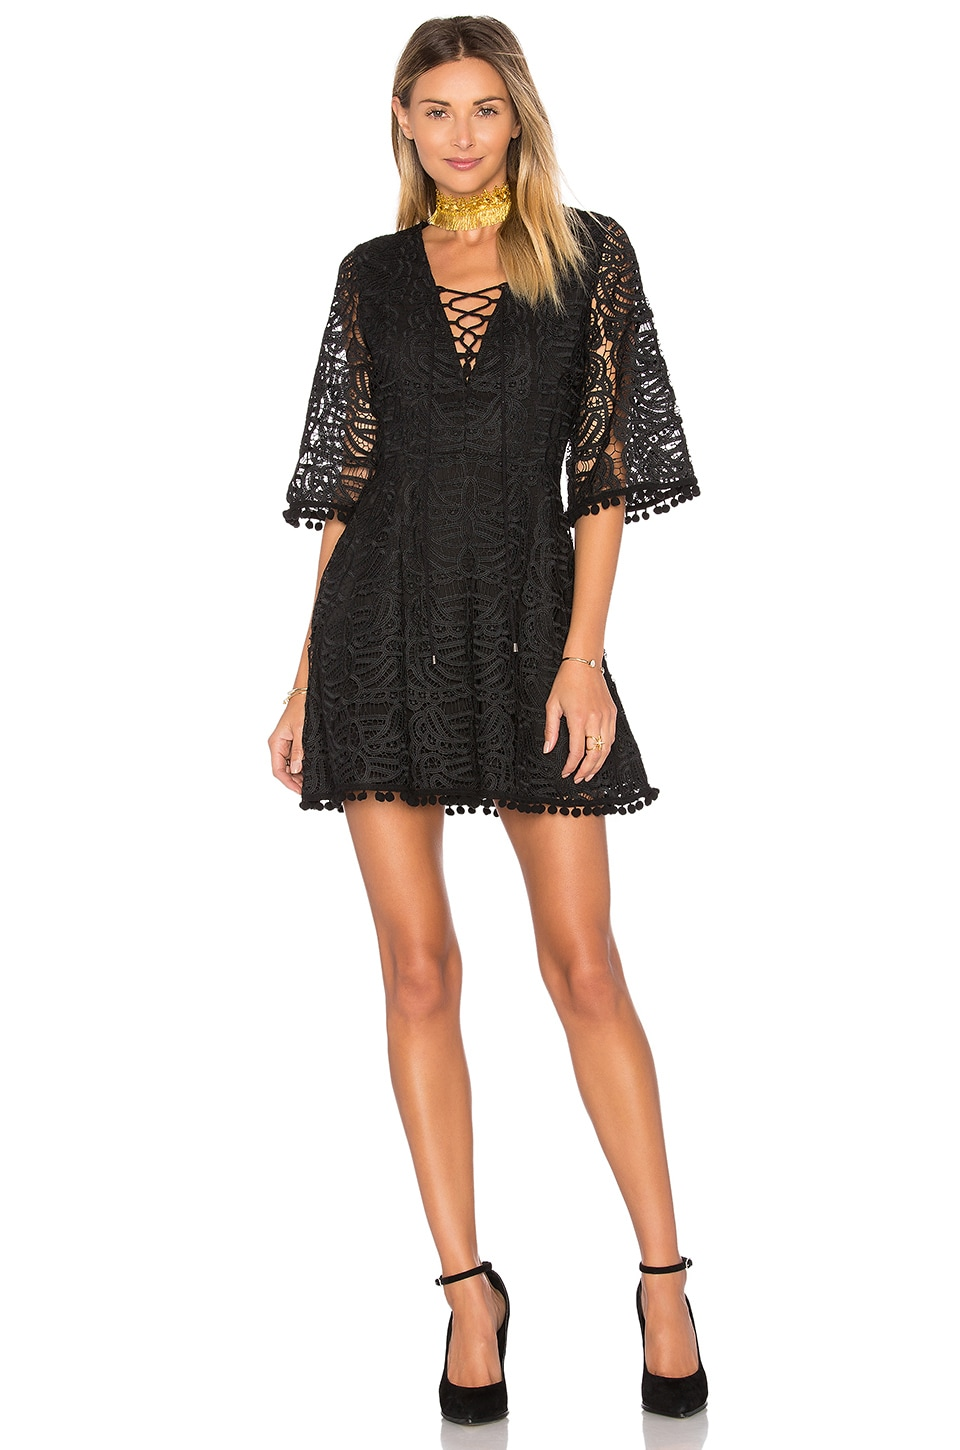 Coal Lace Dress by Tularosa